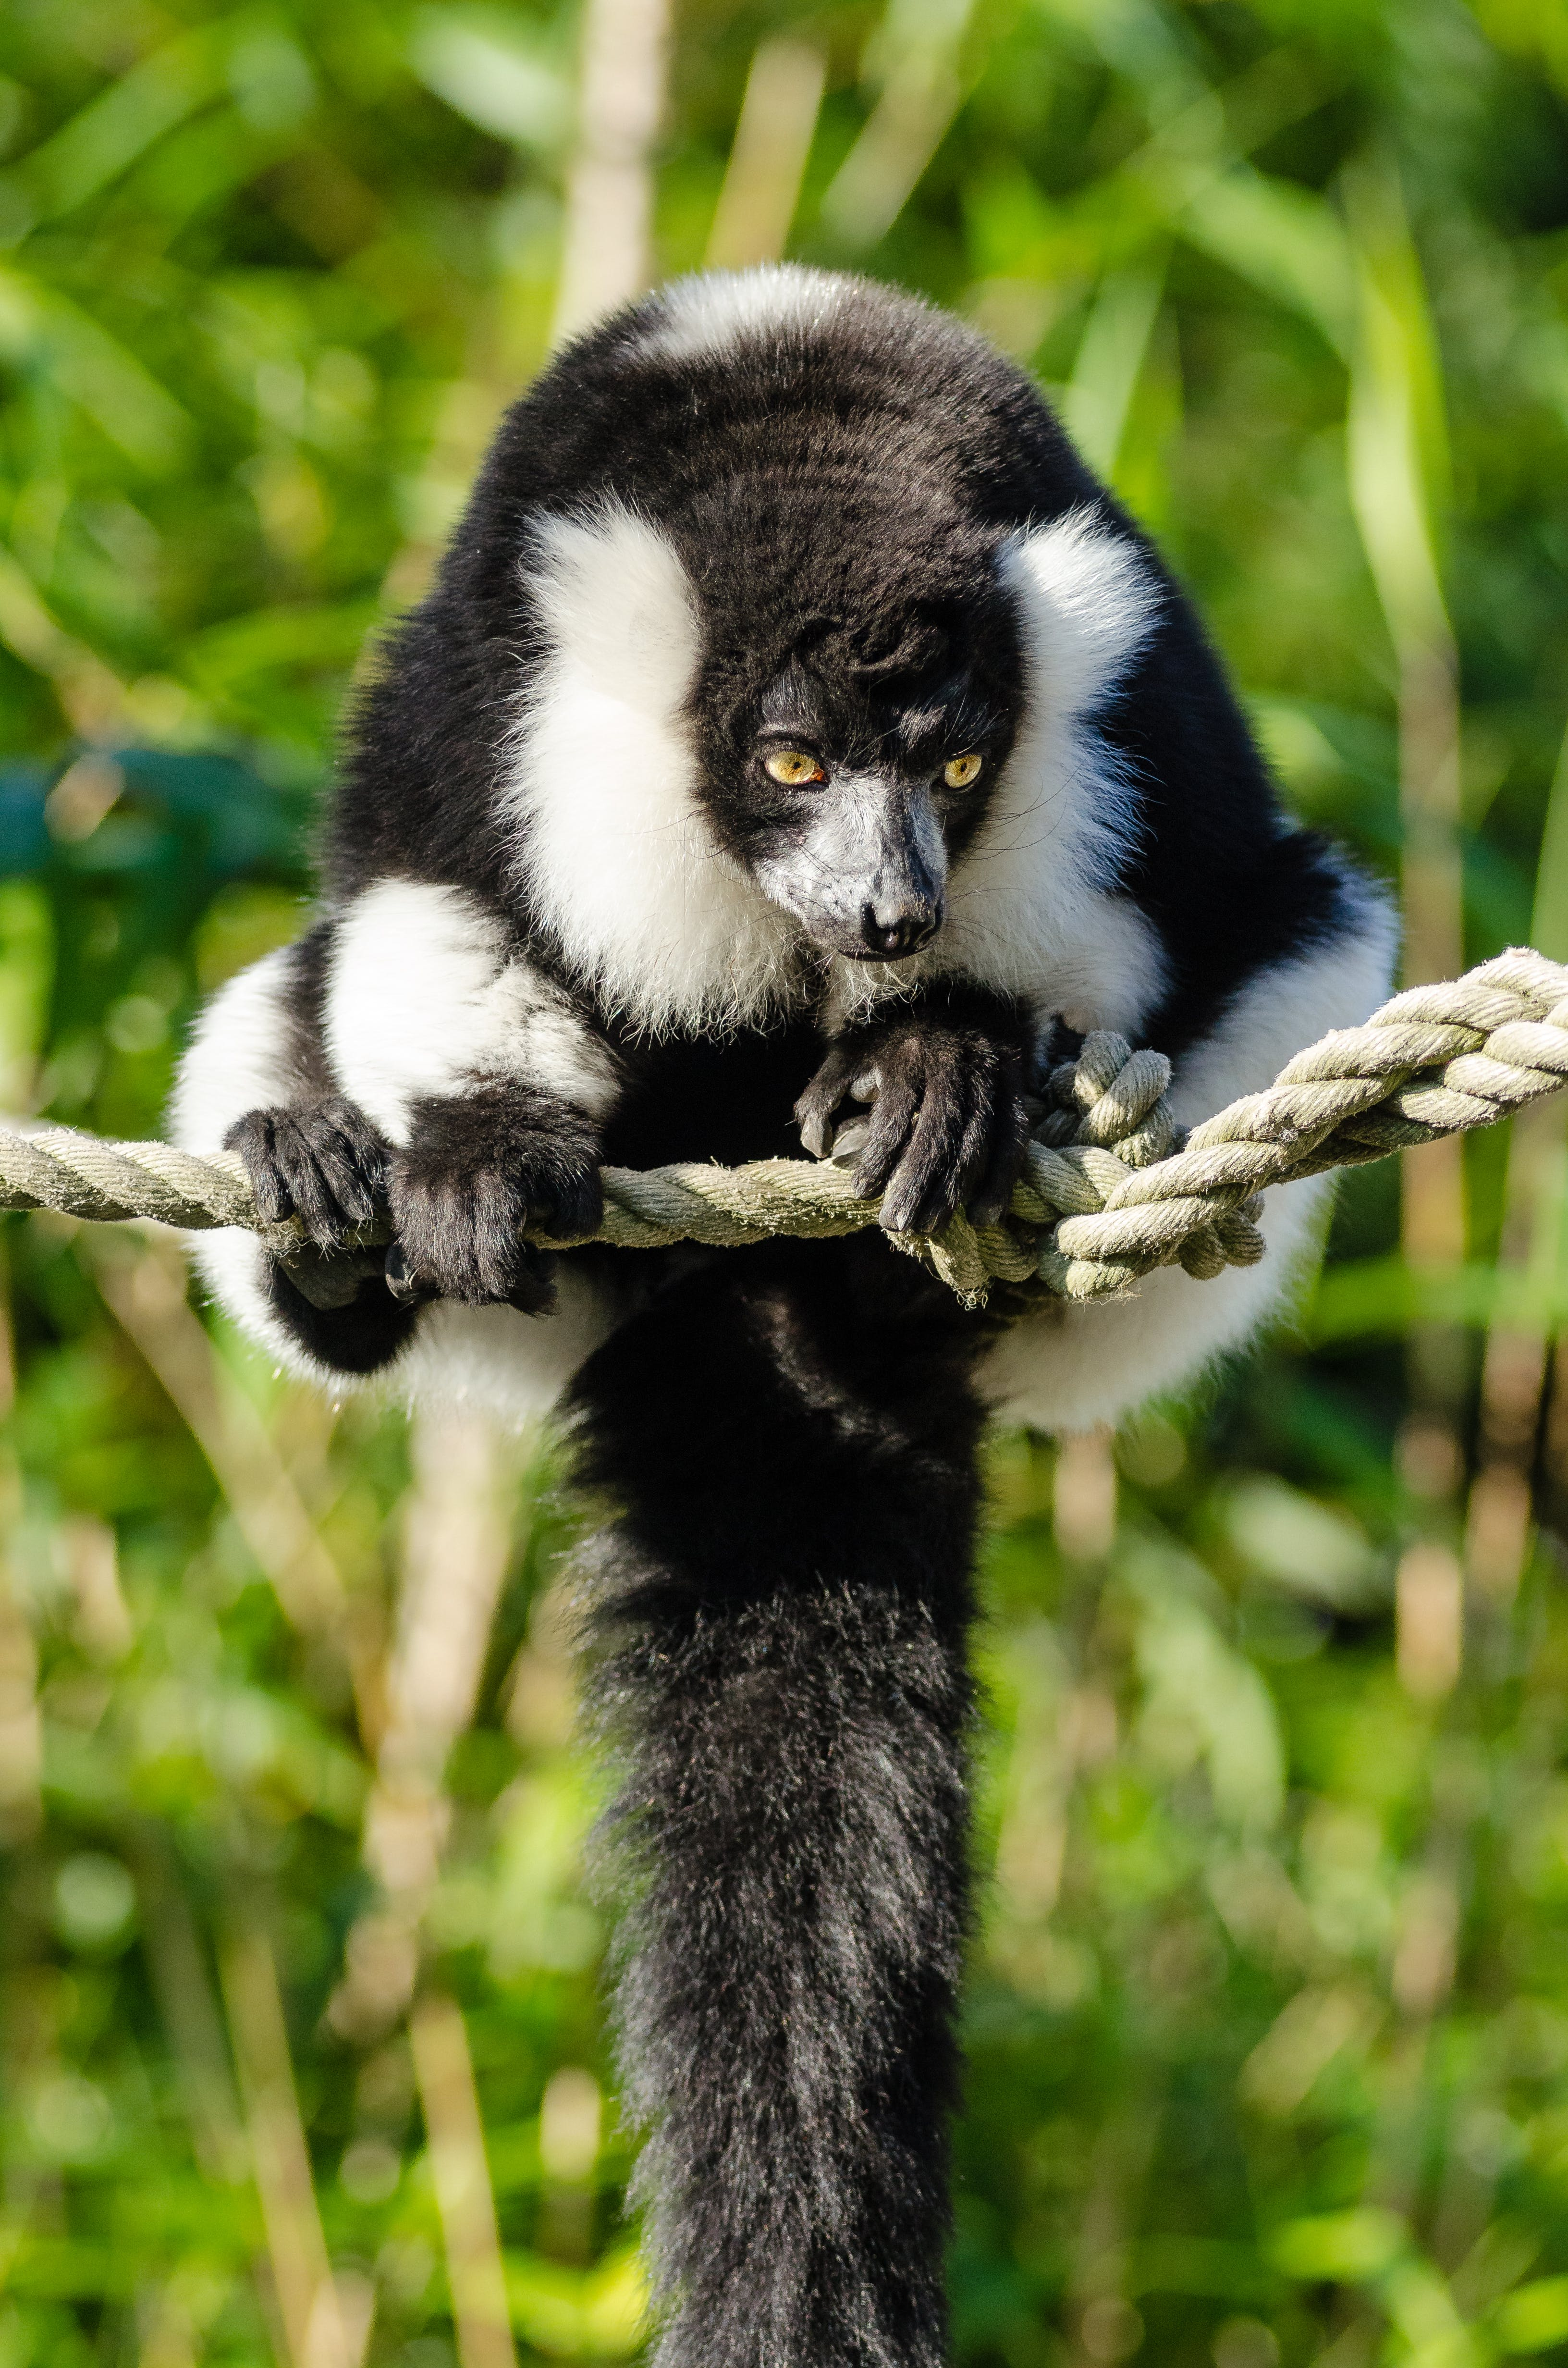 Black and White Animal on the Rope